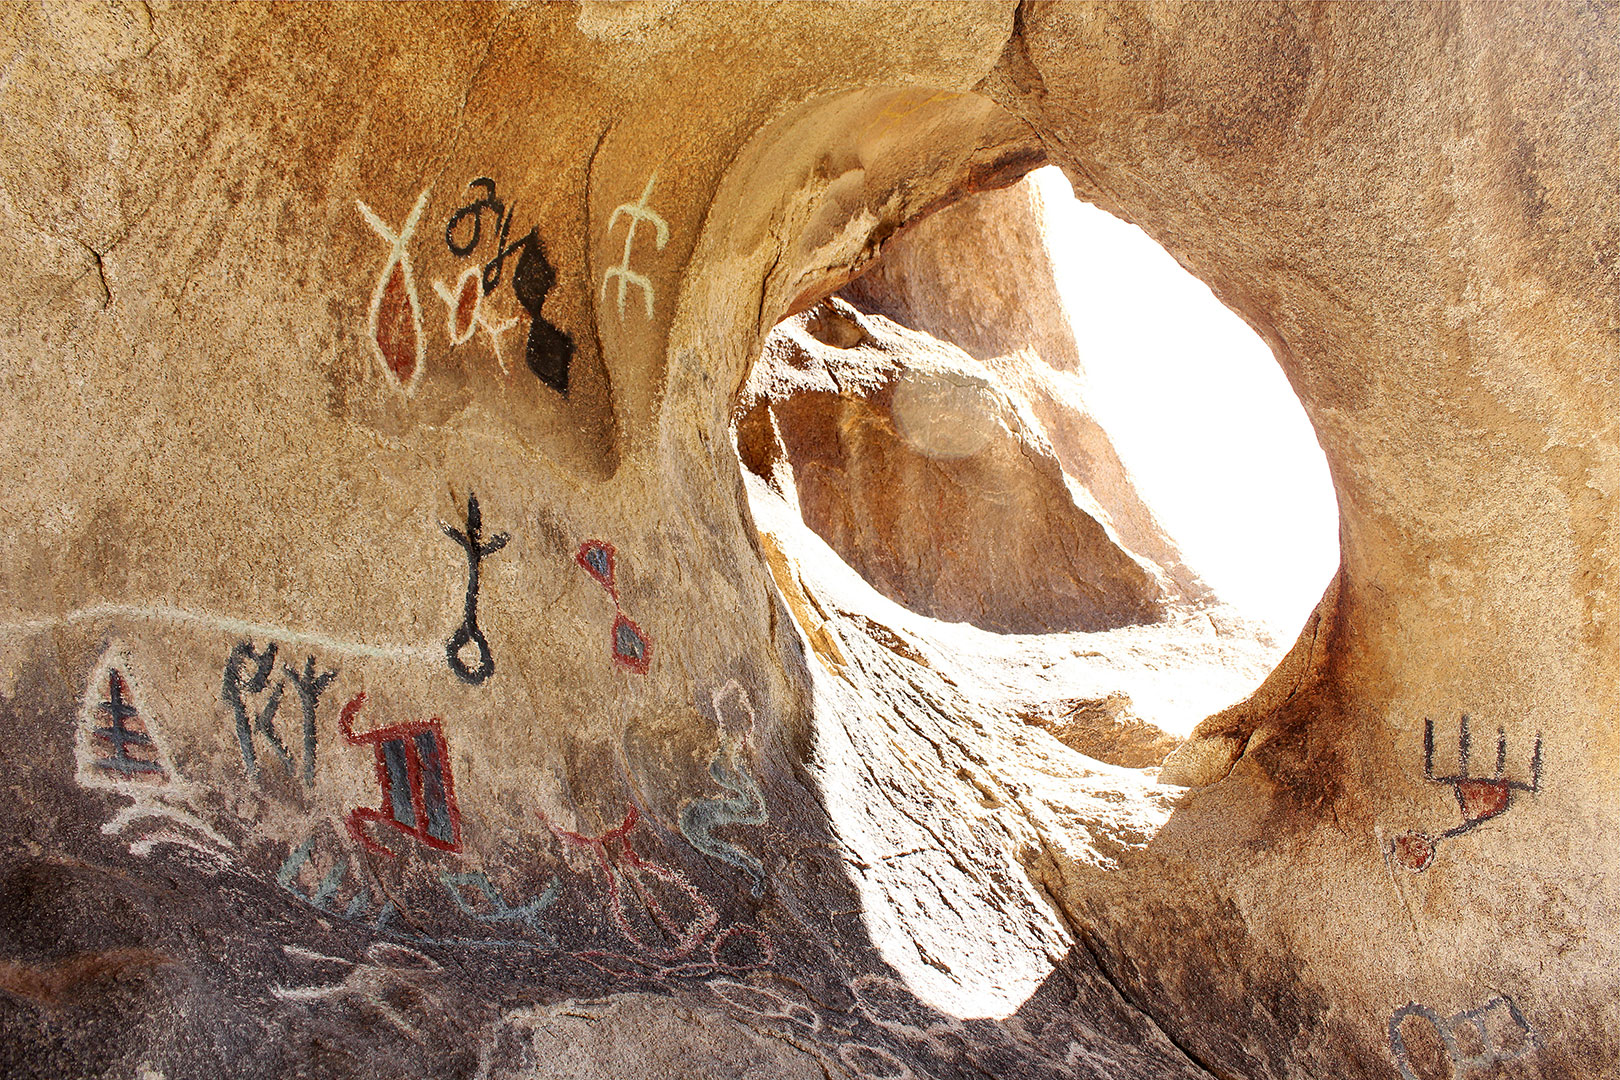 Native American Cave Paintings found on one of our hikes!